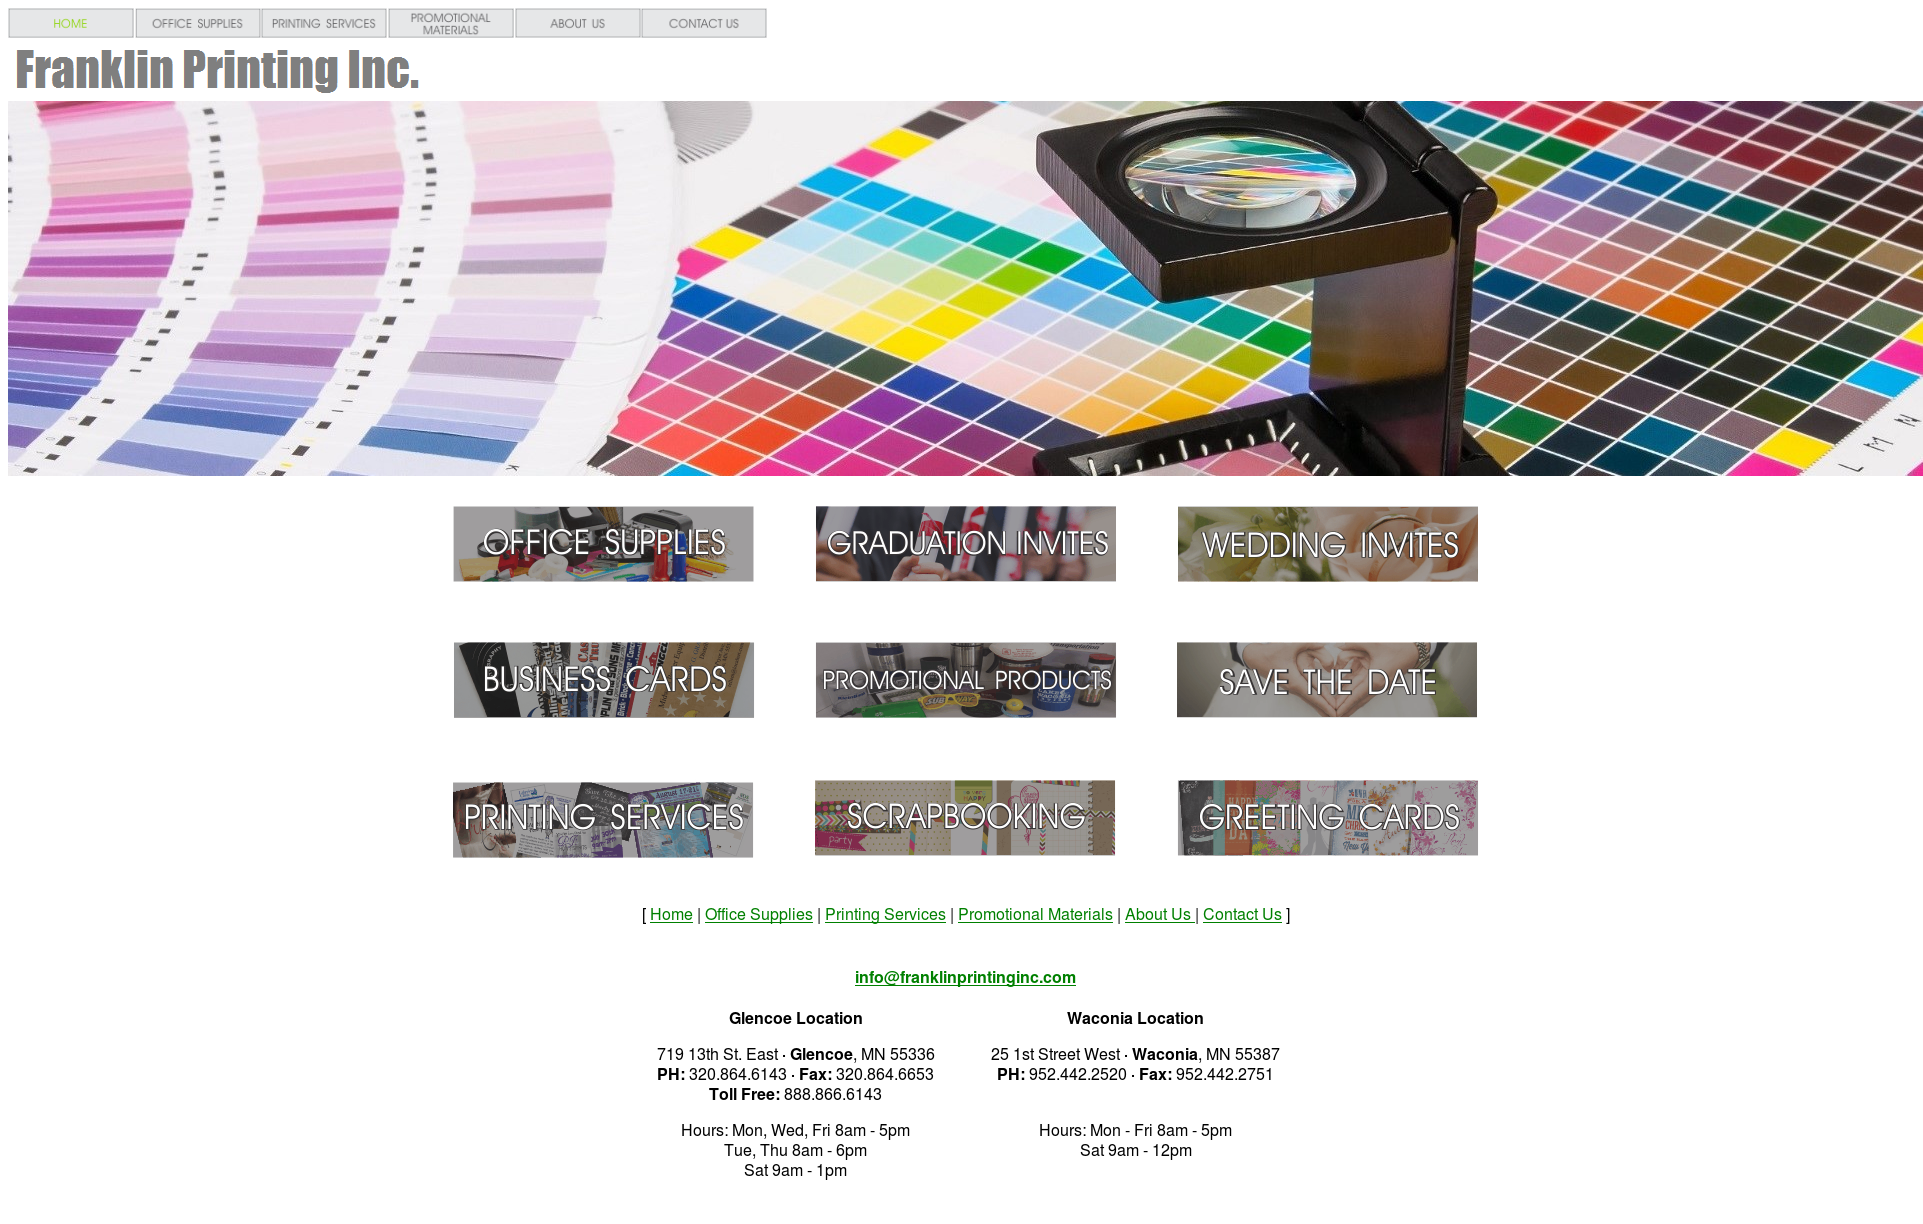 Franklinprintinginc Competitors, Revenue and Employees - Owler